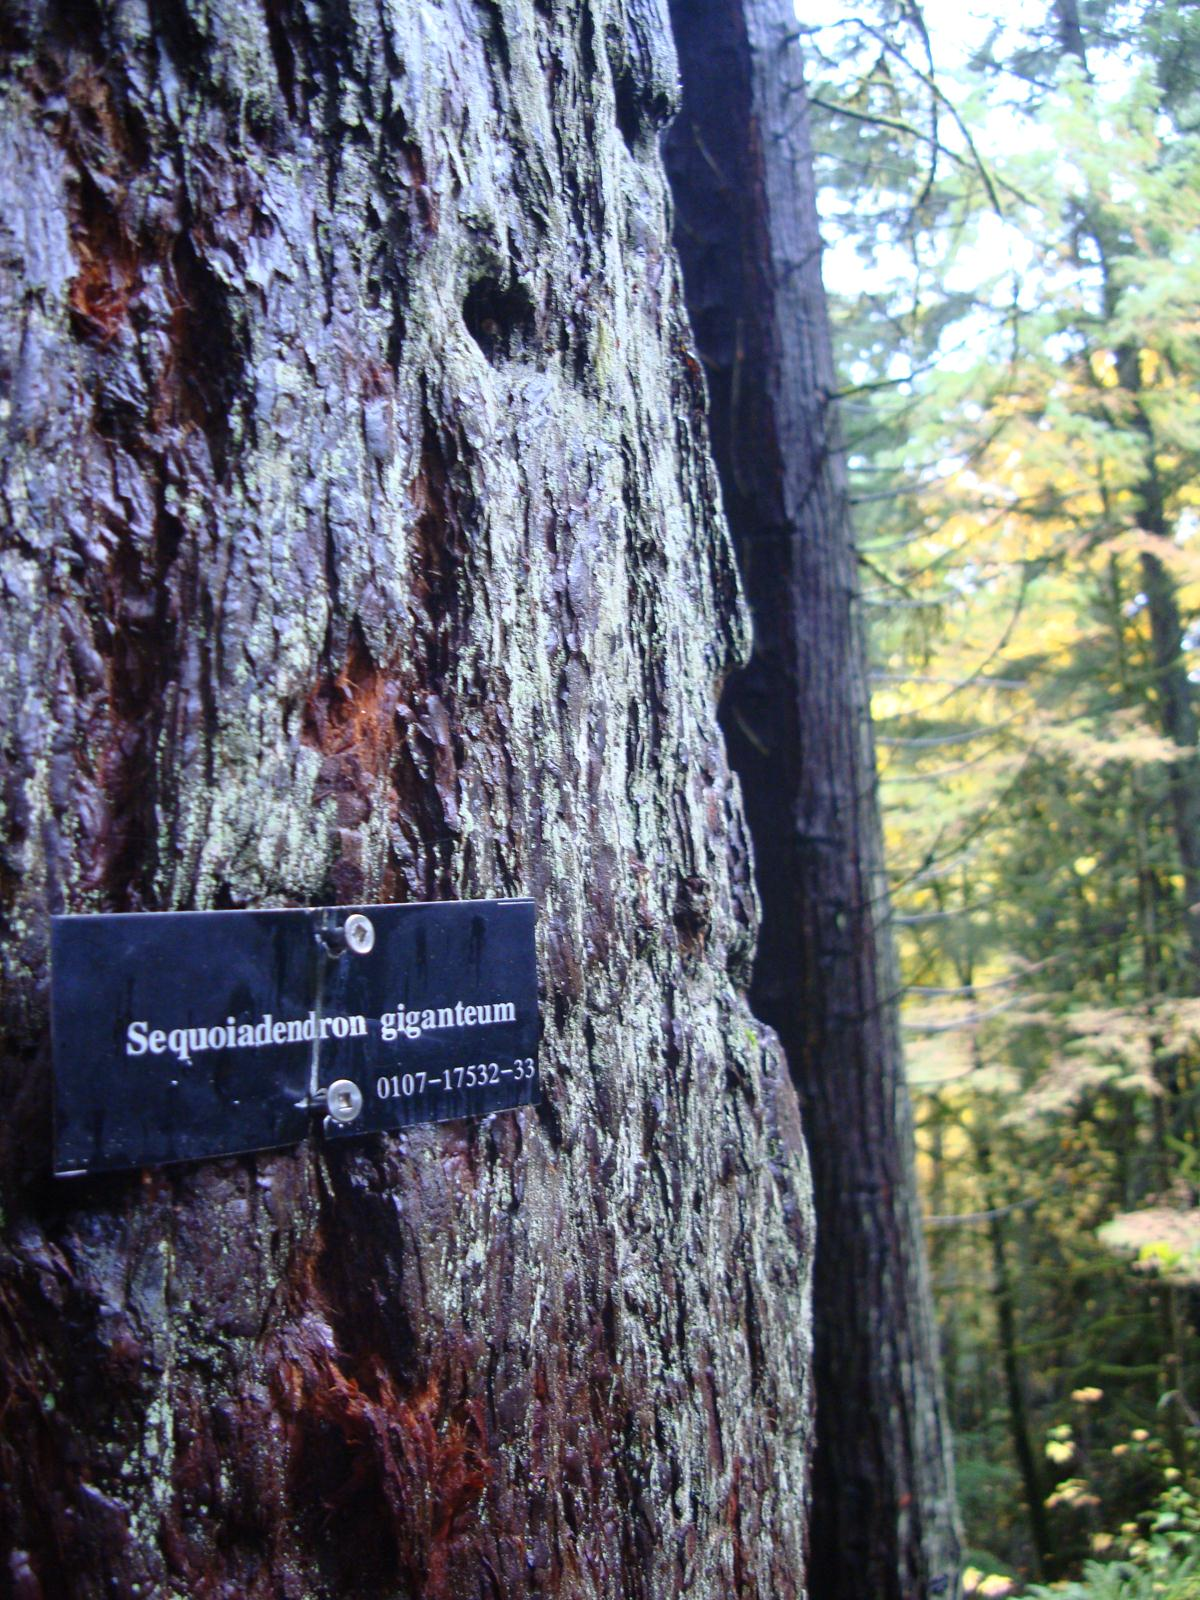 Giant Sequoia marker on tree trunk.